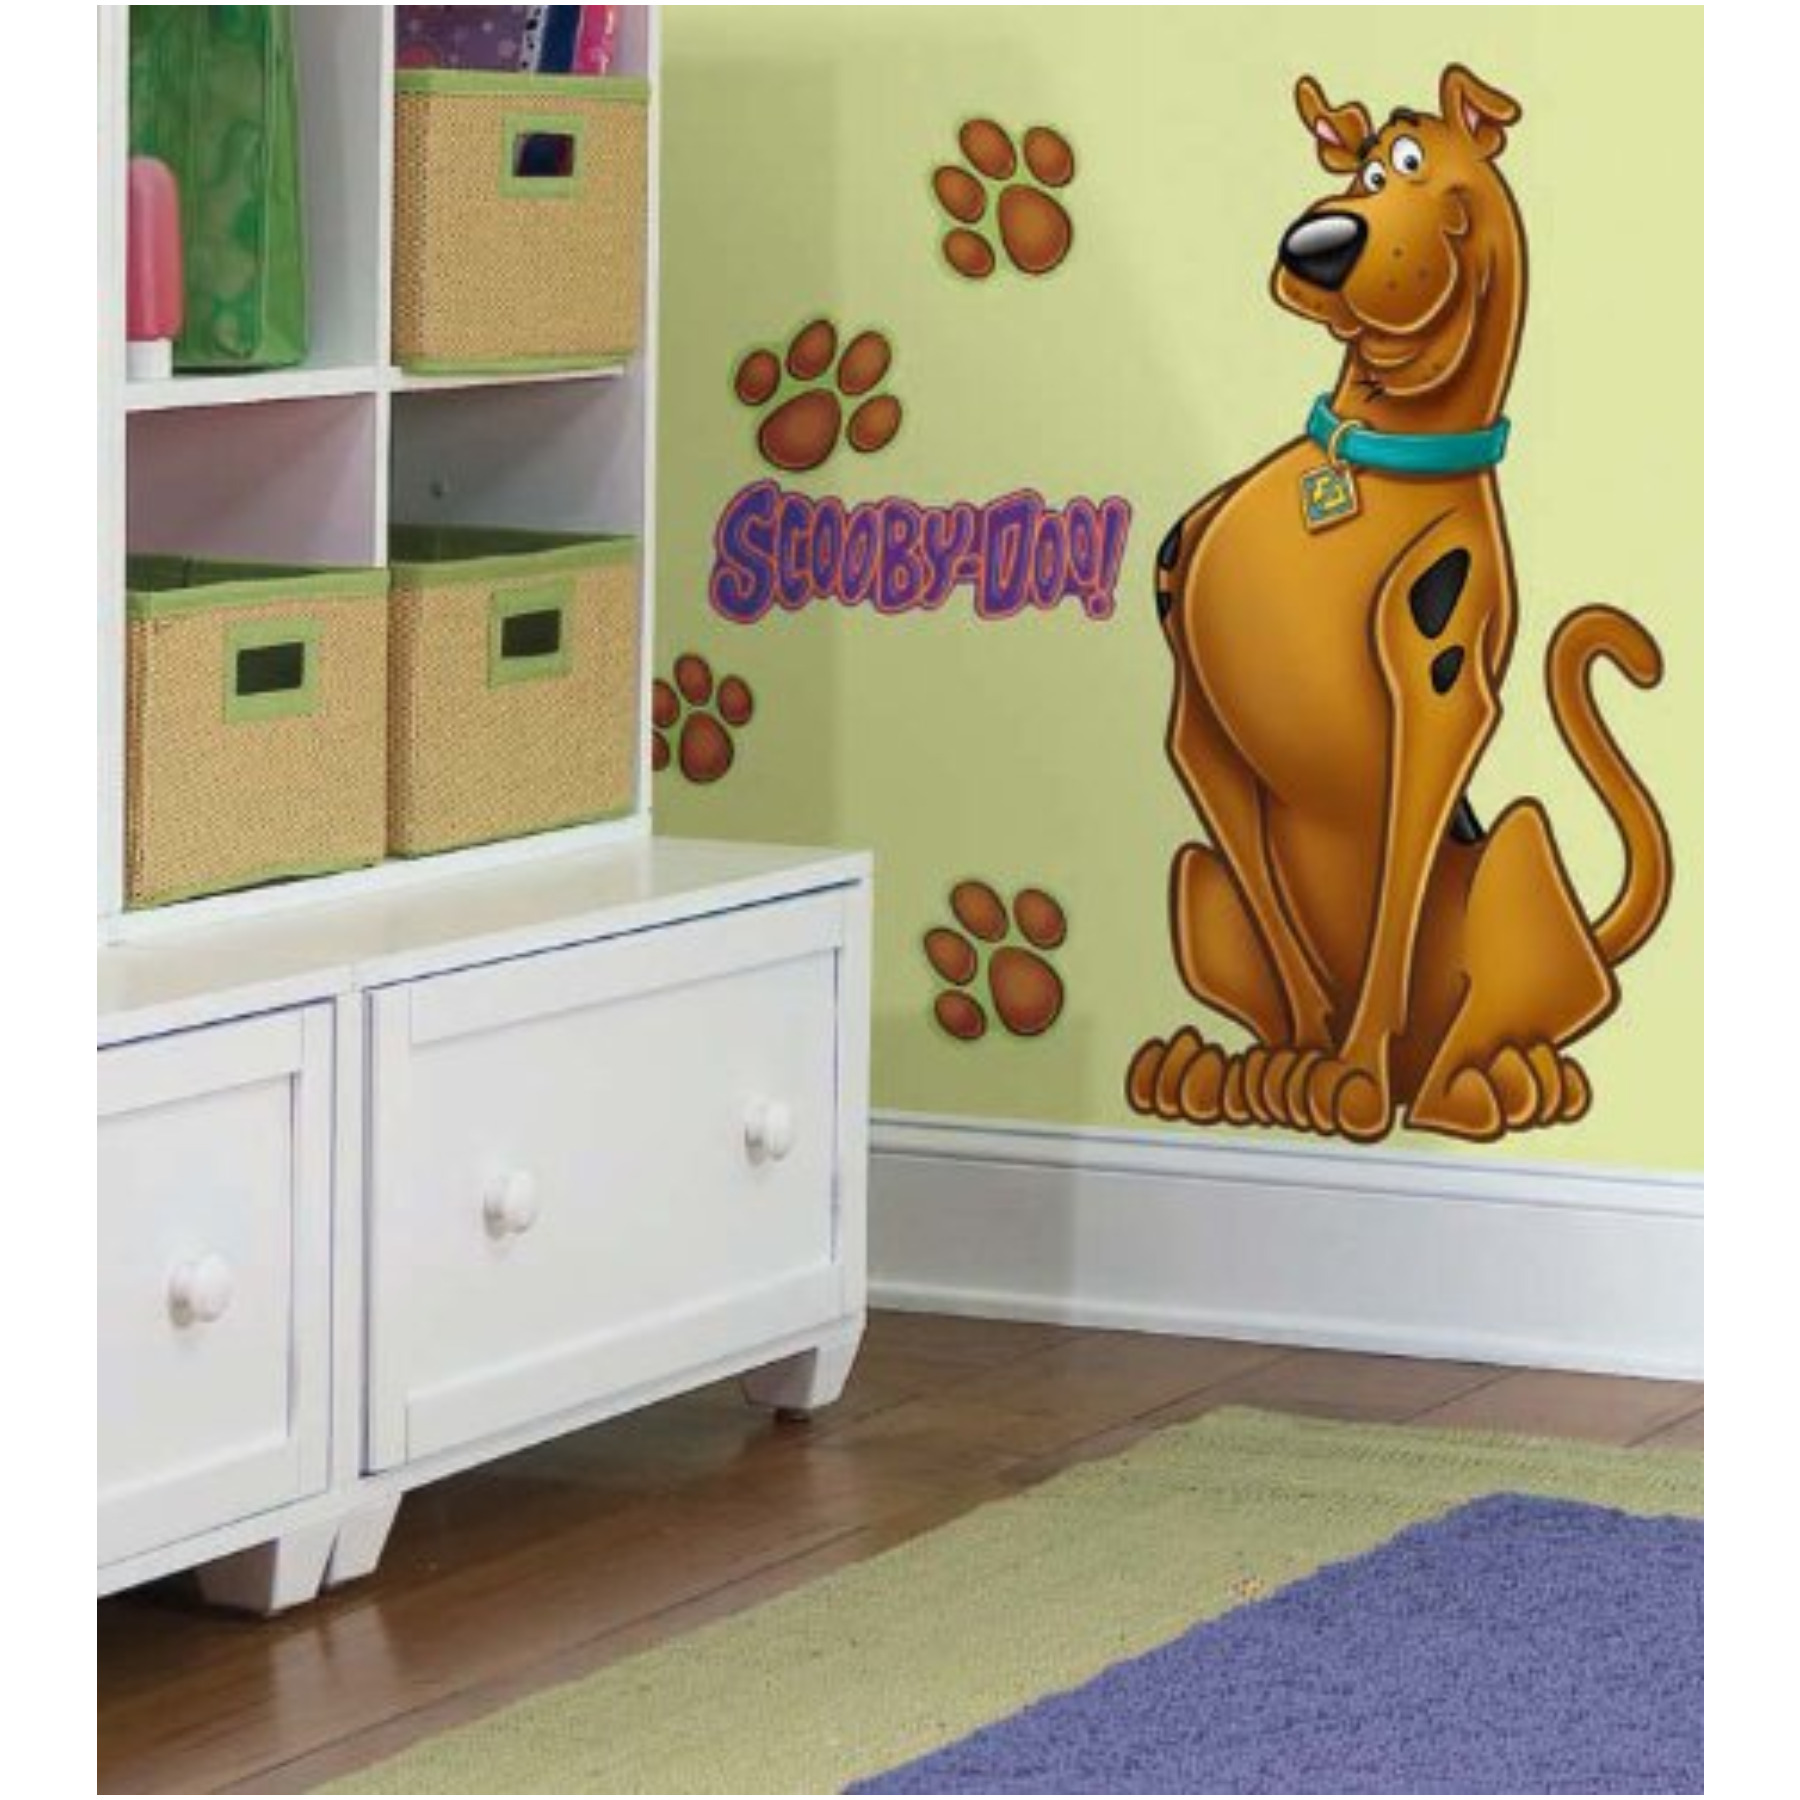 "Scooby Doo Wall Decal Cutout 18""X37"